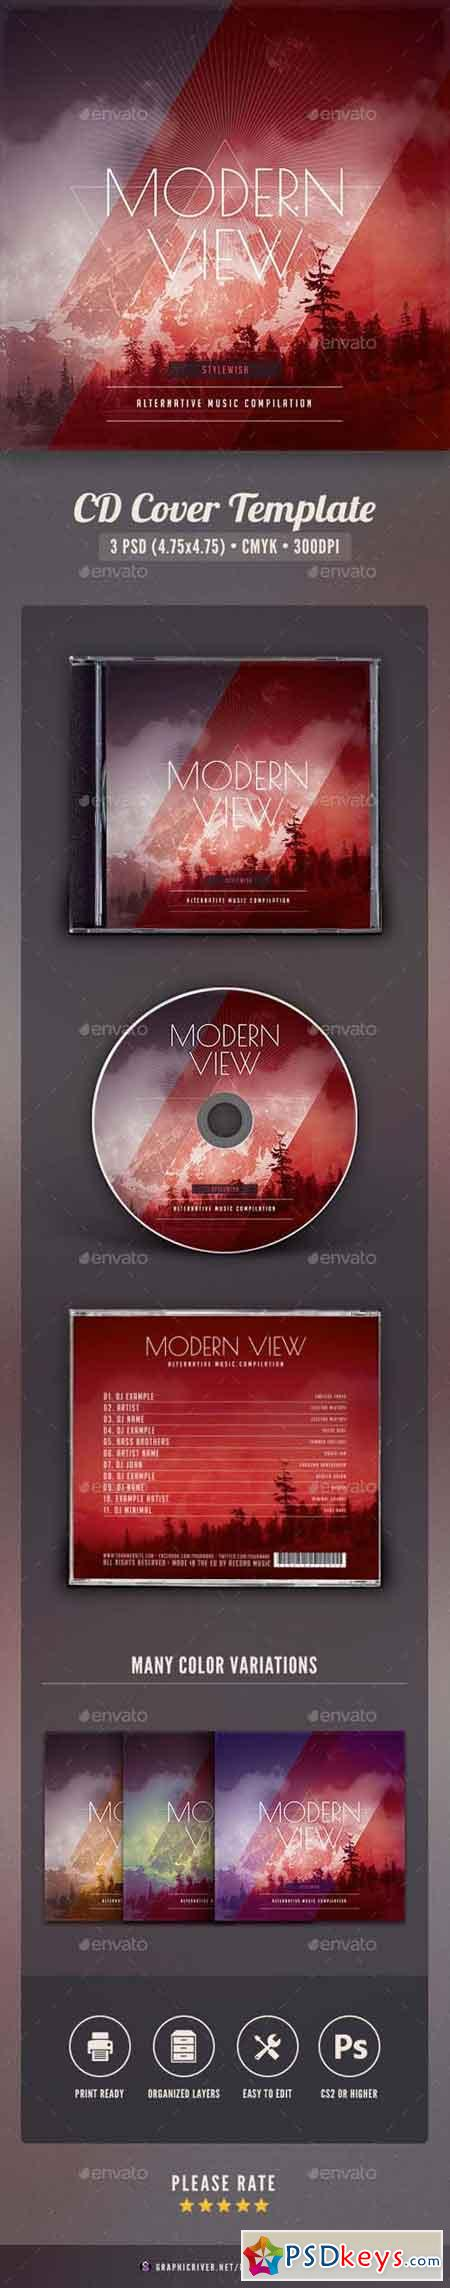 Modern View CD Cover Artwork 16138018